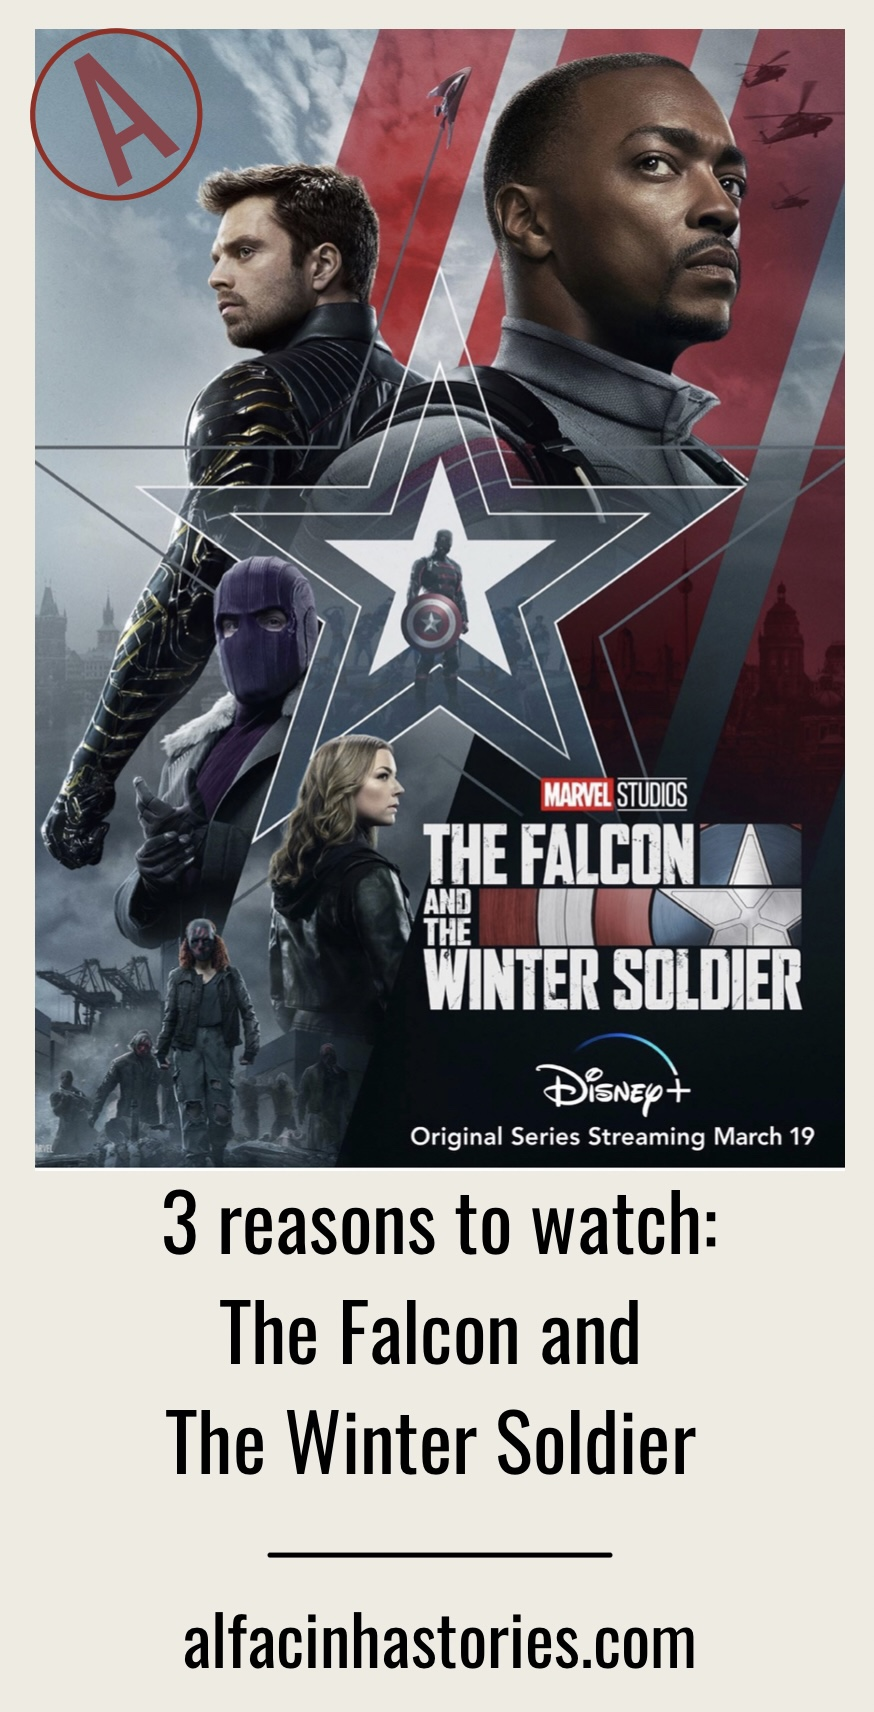 3 Reasons to watch: The Falcon and The Winter Soldier